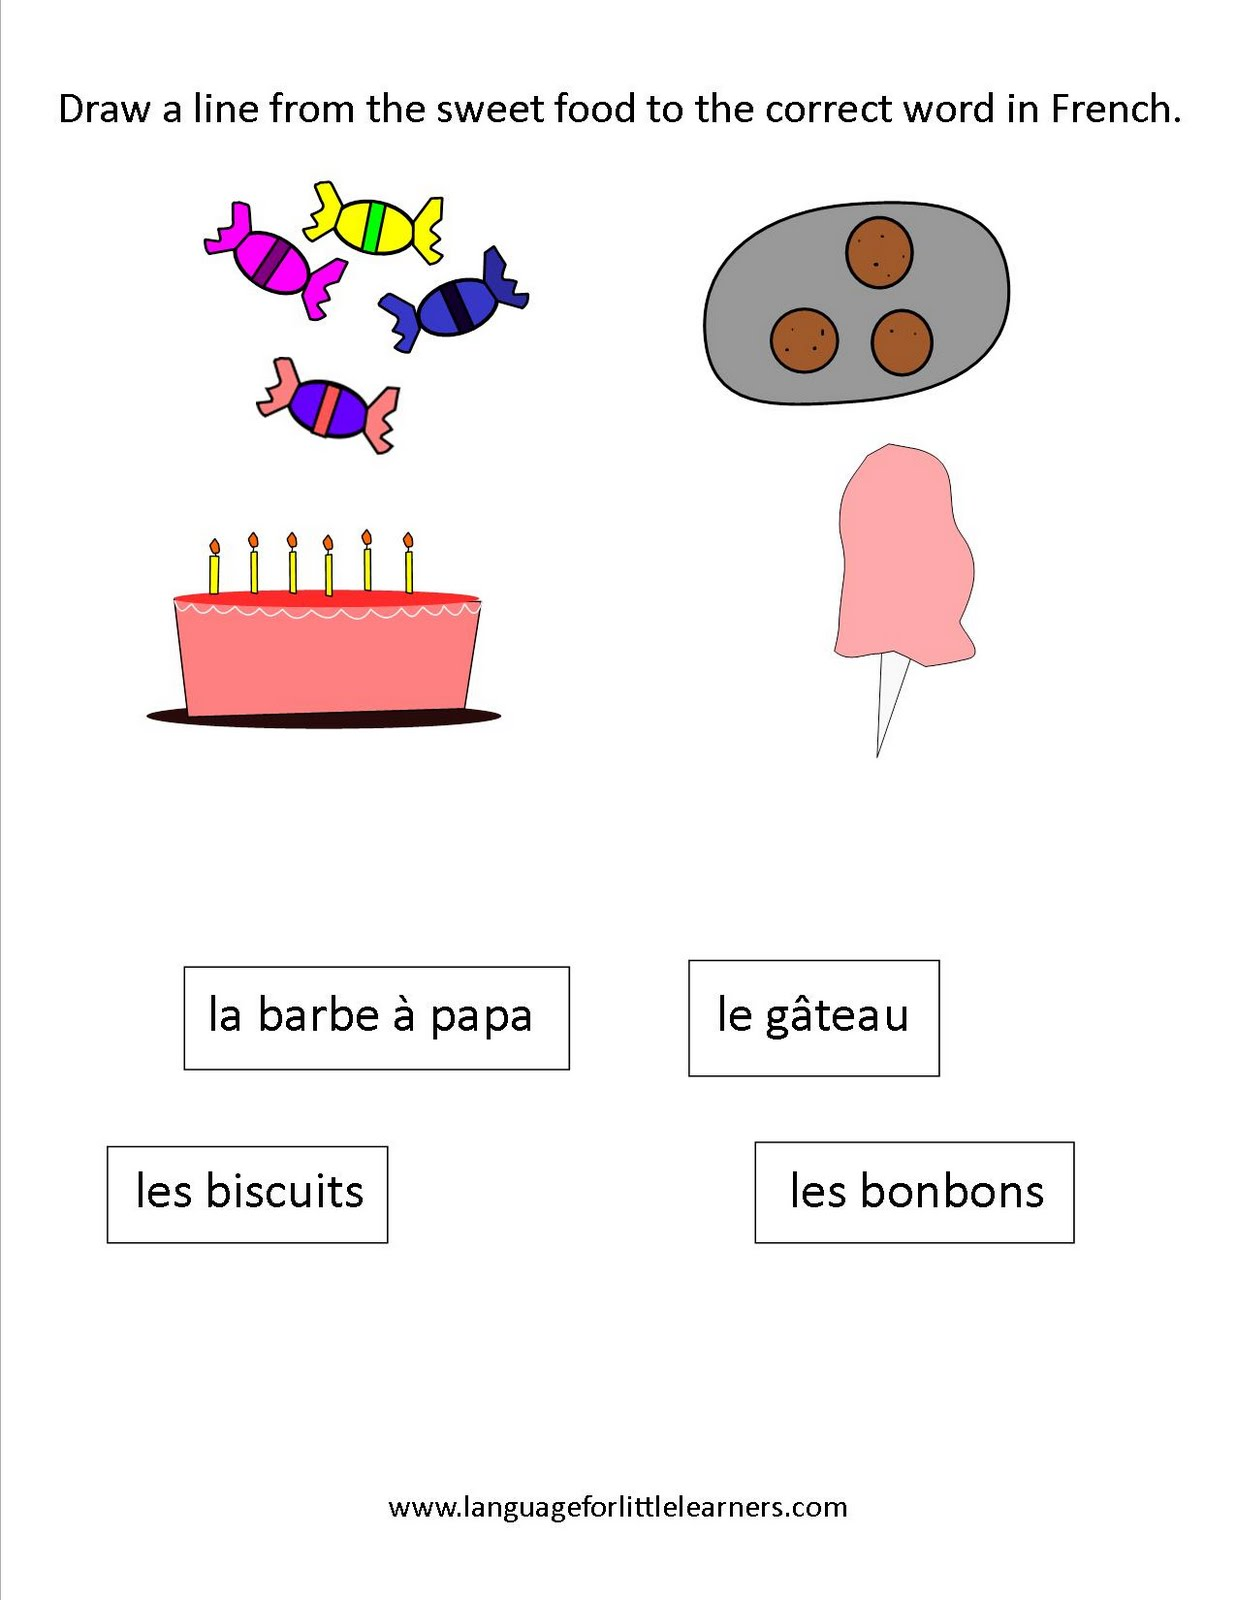 Language For Little Learners Freebie Sweets In French Worksheet